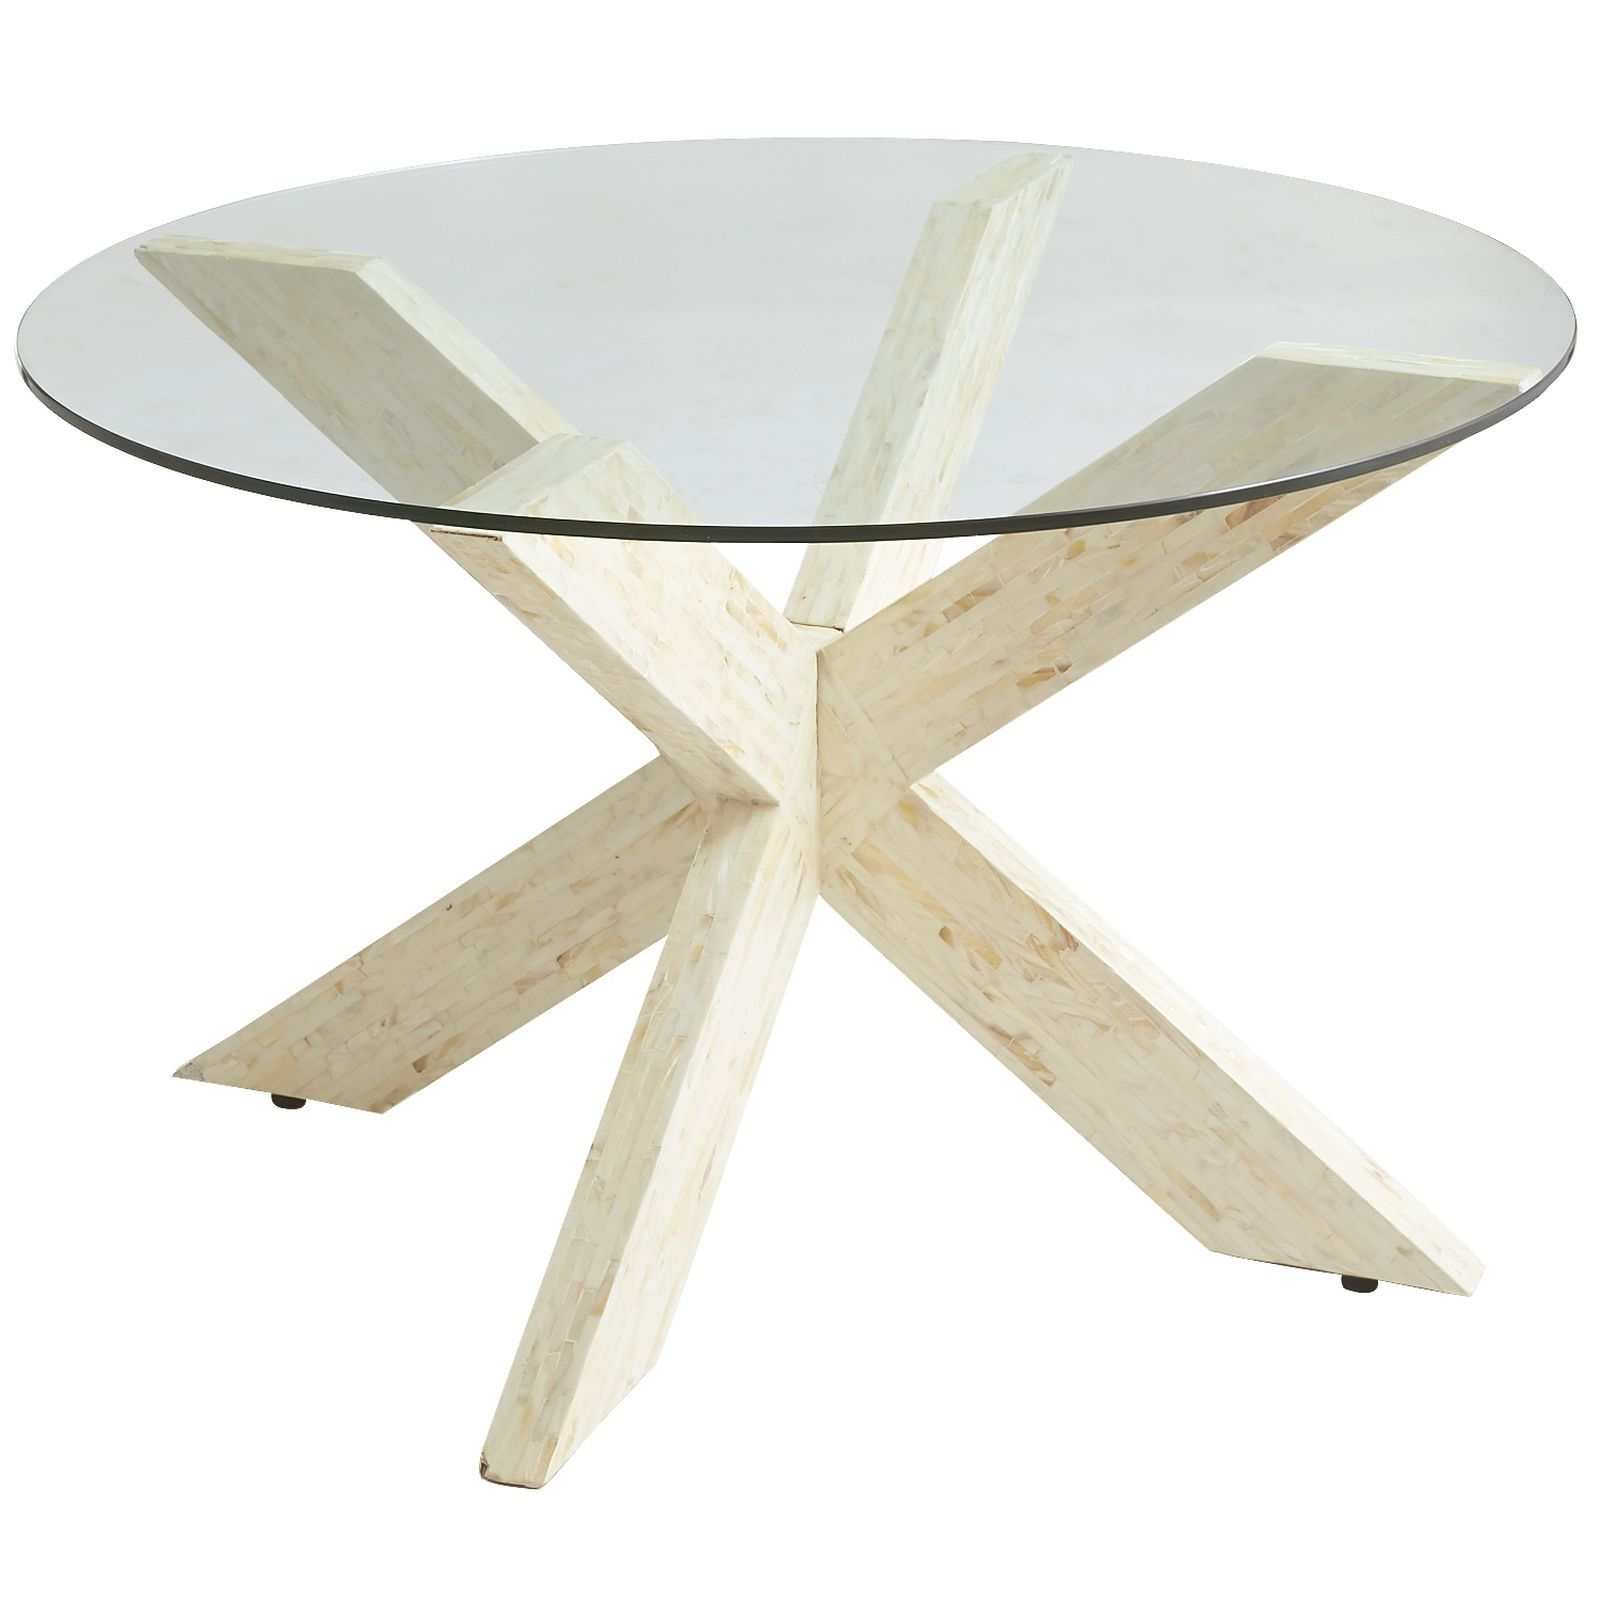 A X Marks This Modern Treasure With Sleek Lines And Mother Of Pearl Finish Base Definitely Has Wow Factor 30 Gl Top Sold Separately